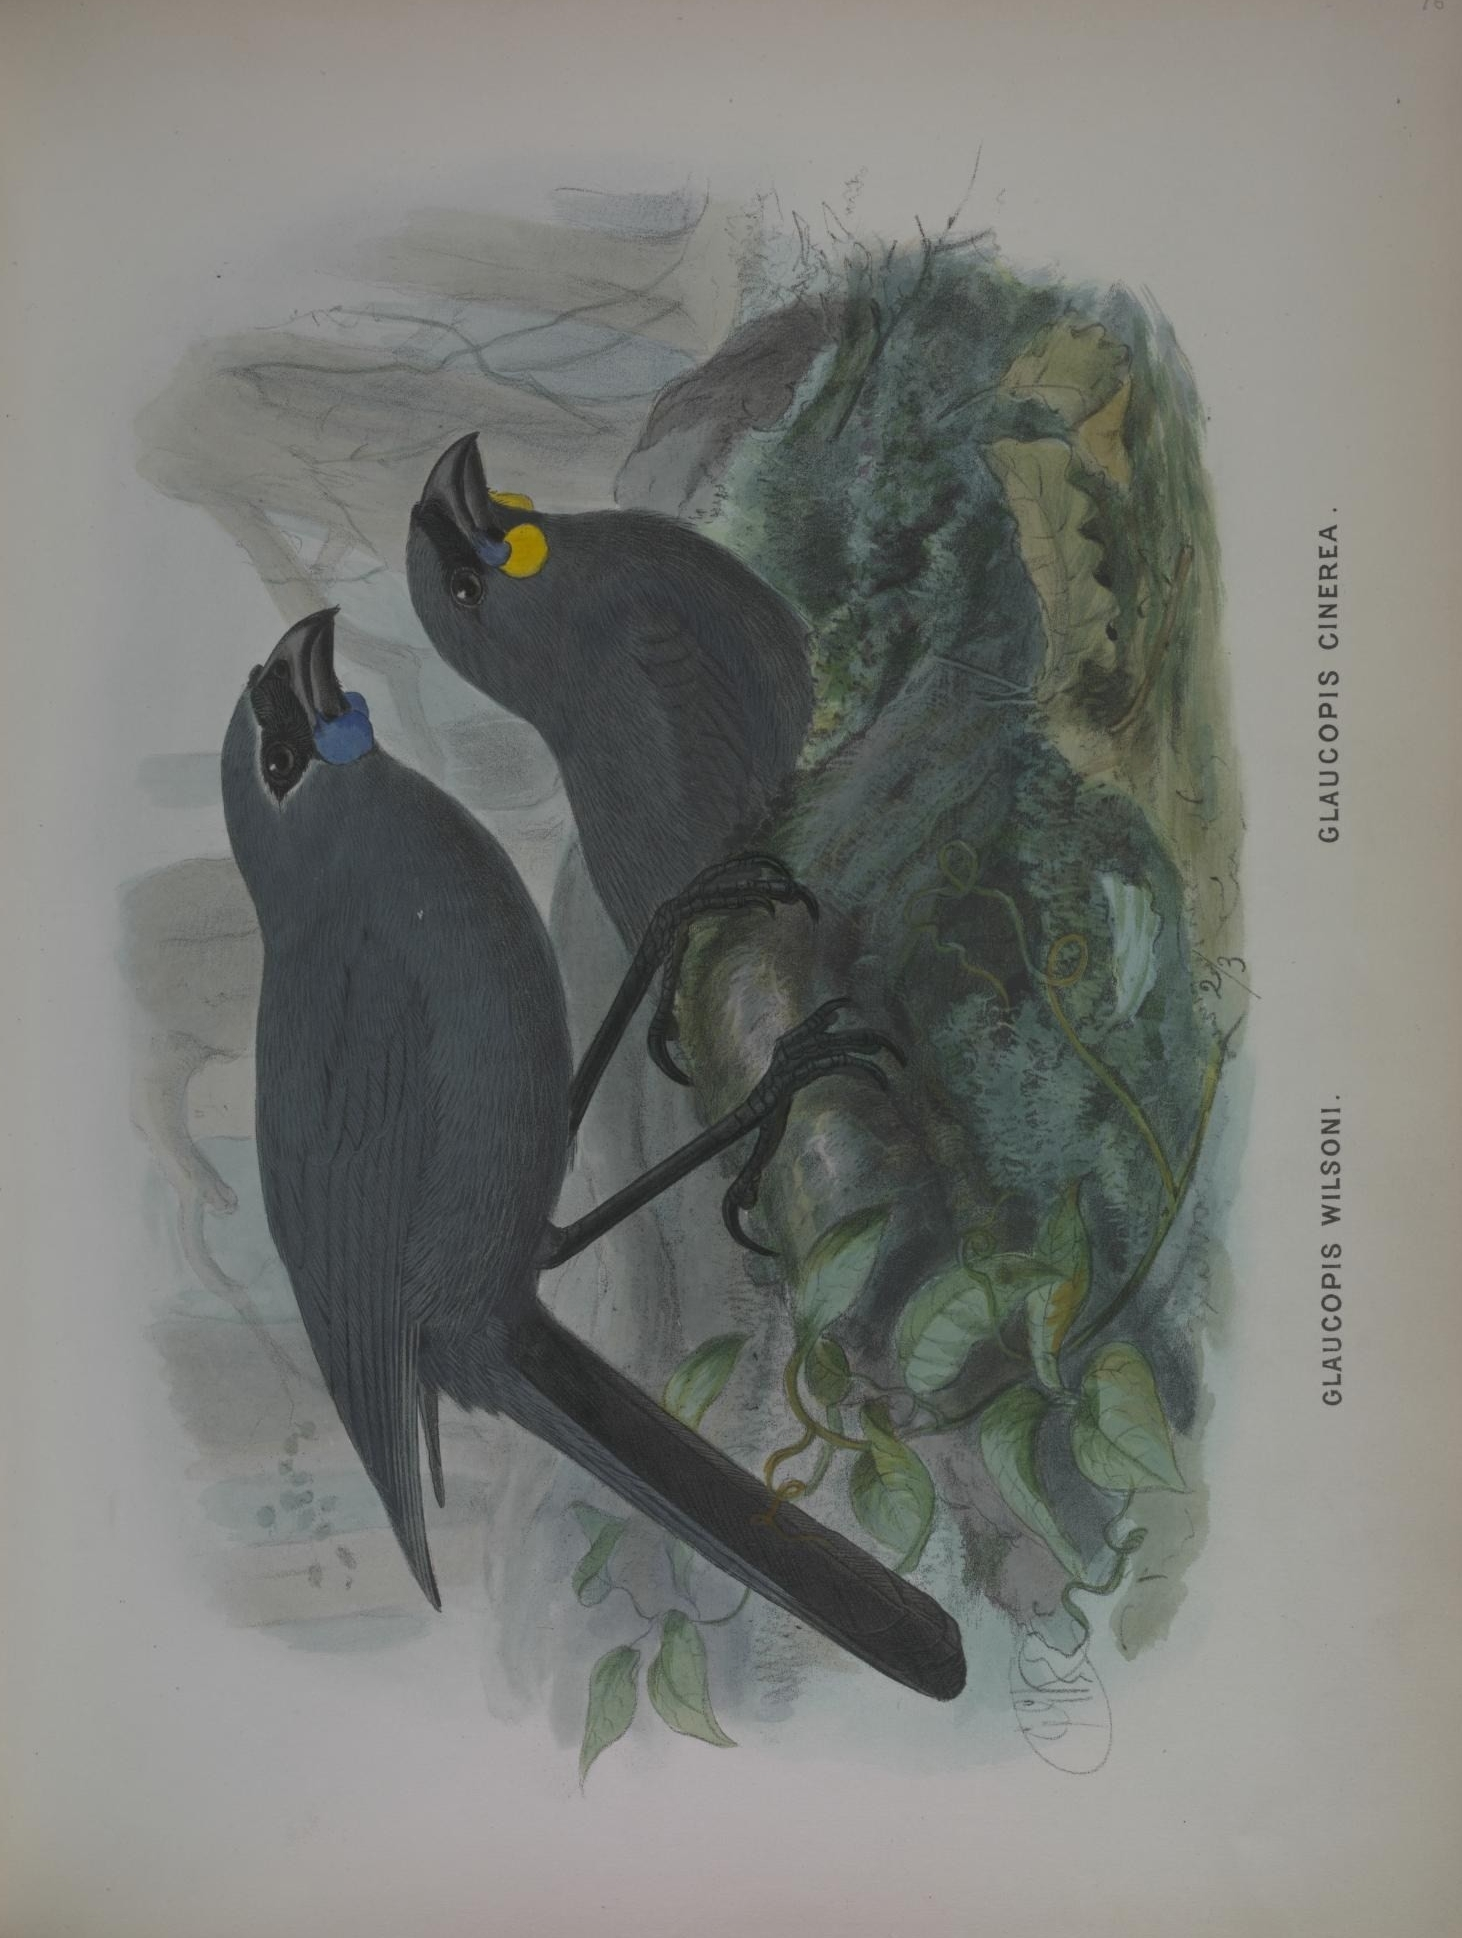 Image of kokako